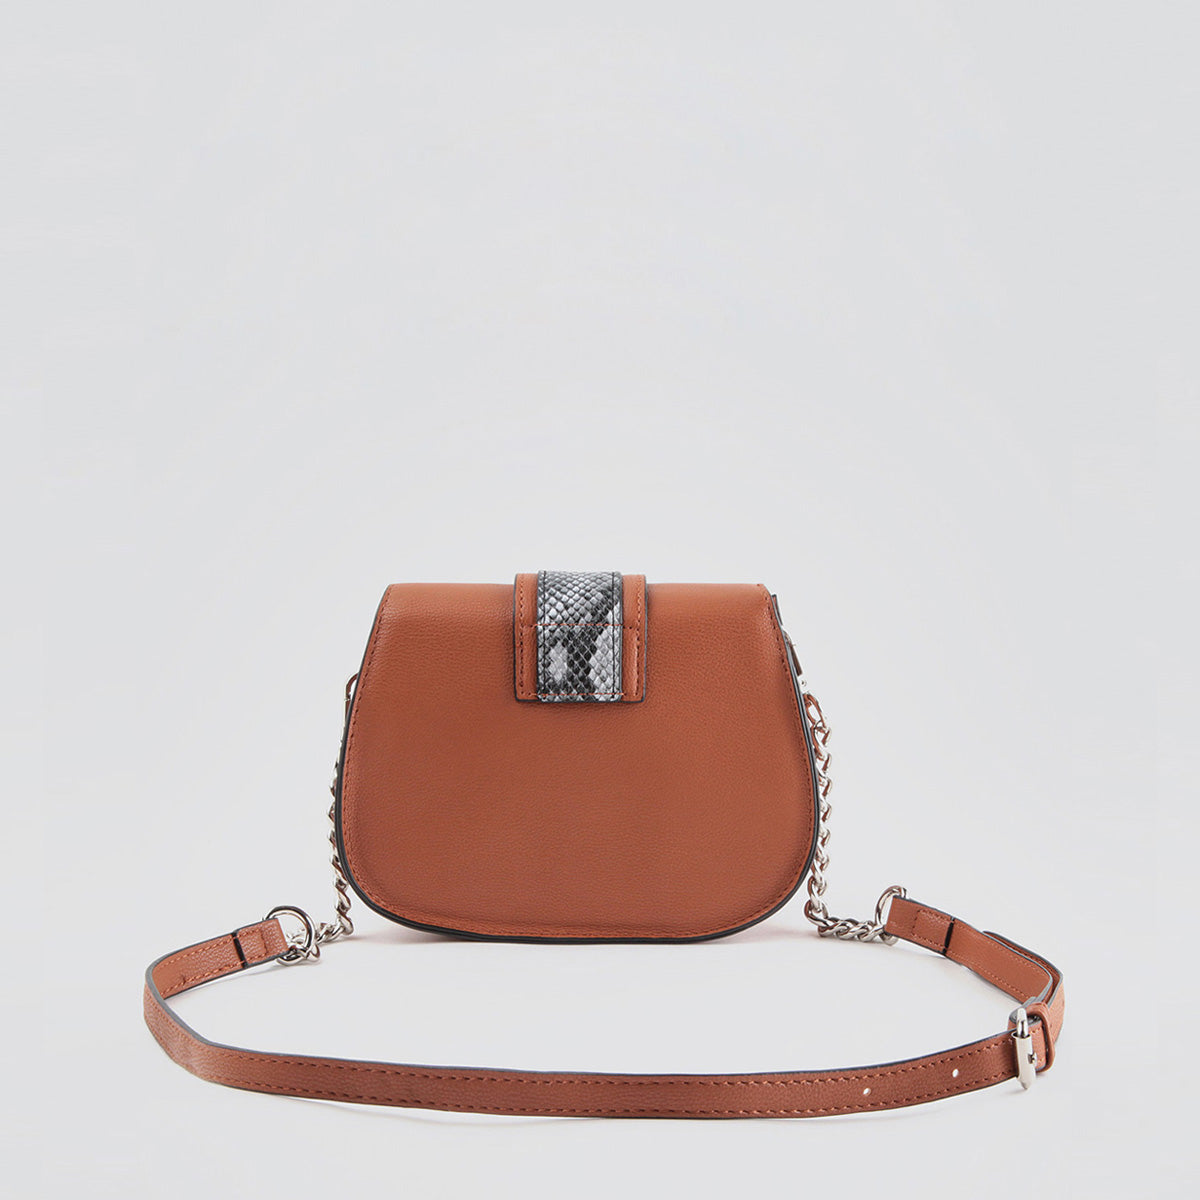 Snaky shoulder bag